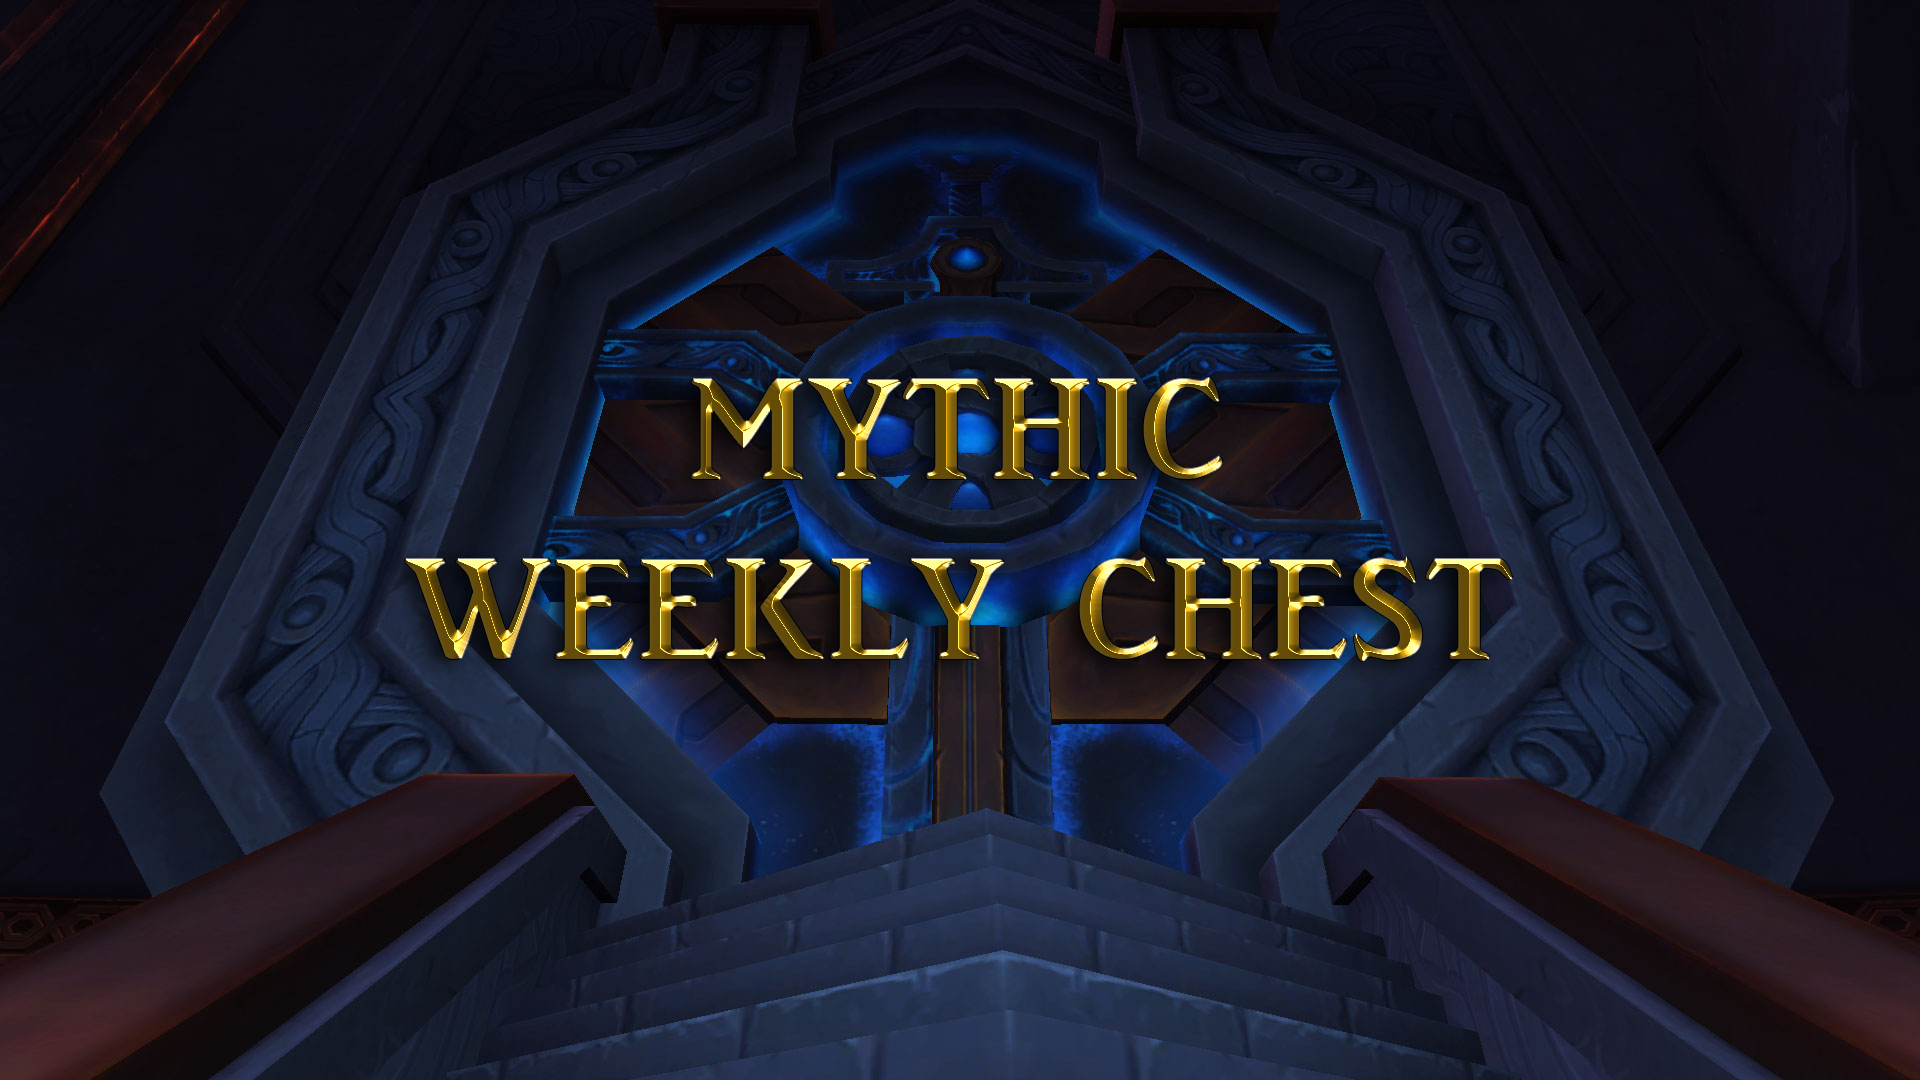 Mythic weekly chest Sedovlasiy - e2p.com